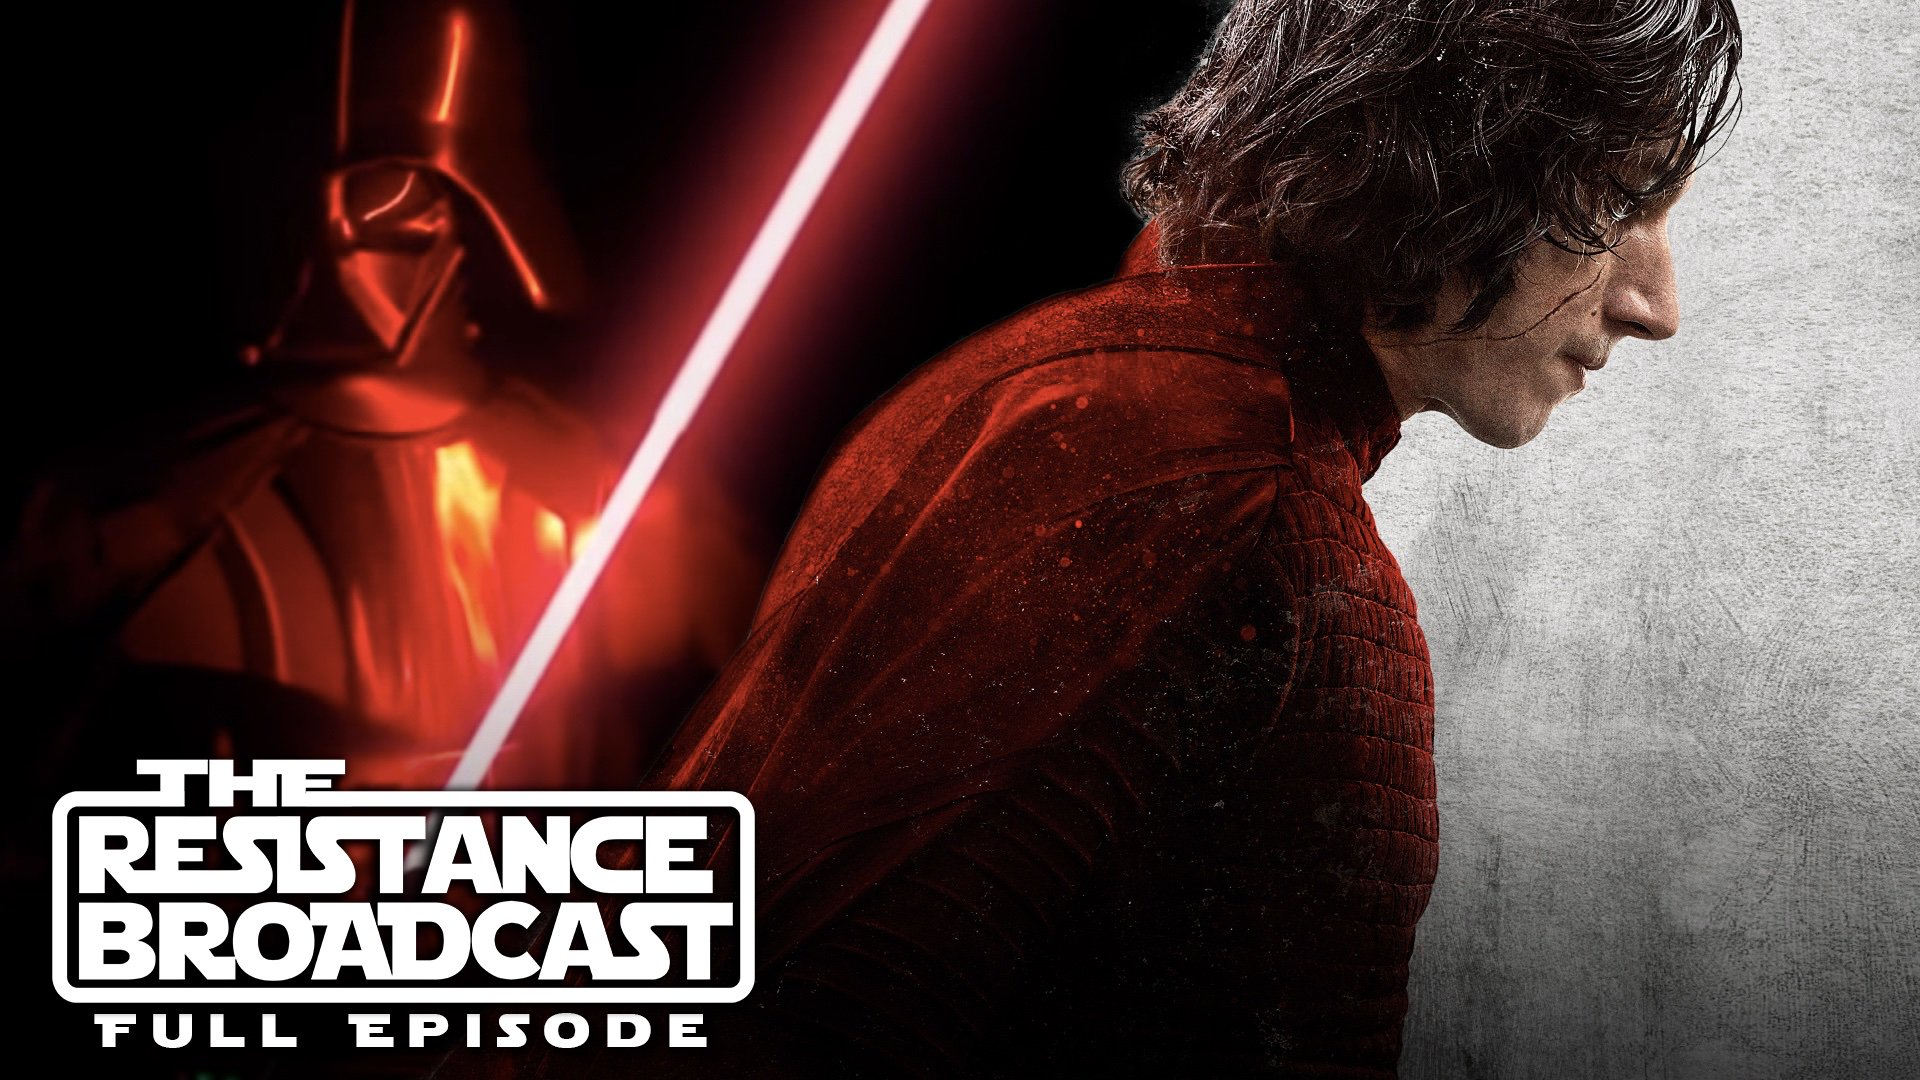 The Resistance Broadcast What If Kylo Ren S Fate Is Too Similar To Darth Vader S Star Wars News Net